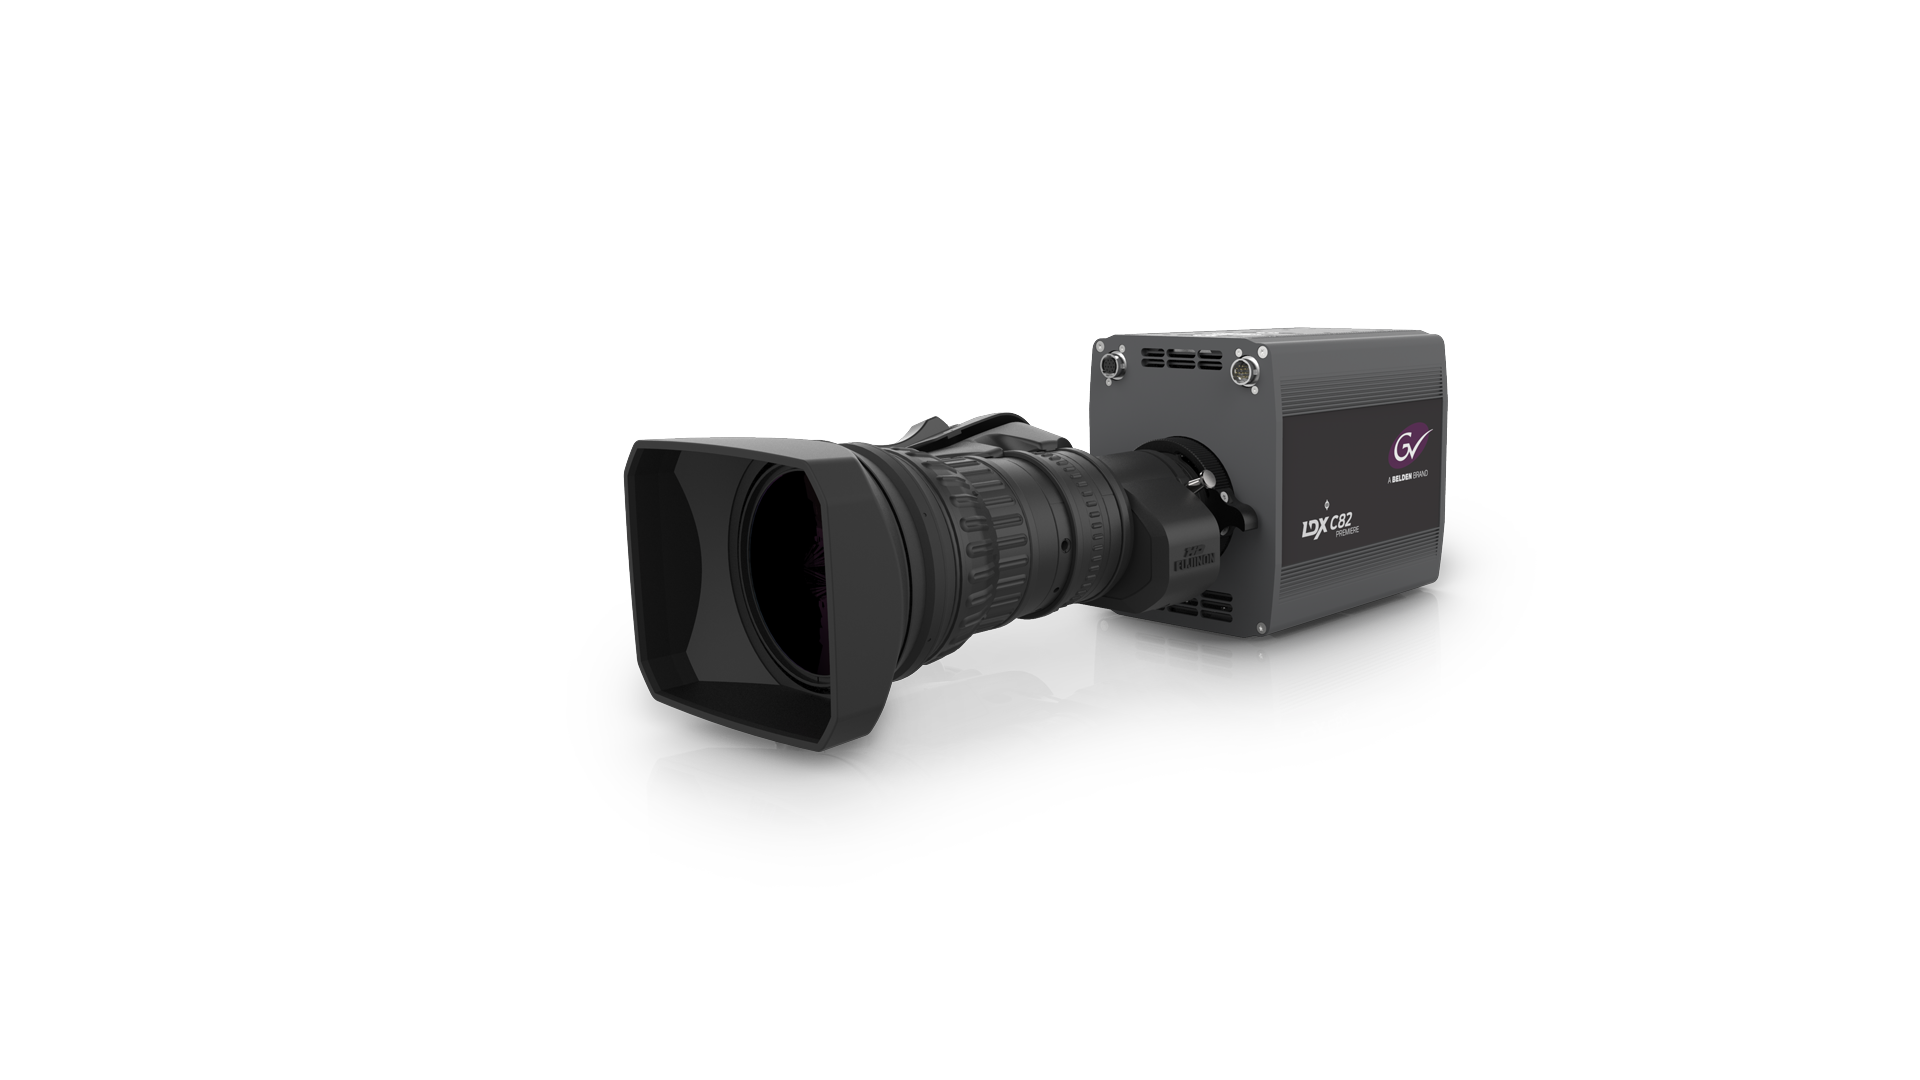 LDX C82 with Lens